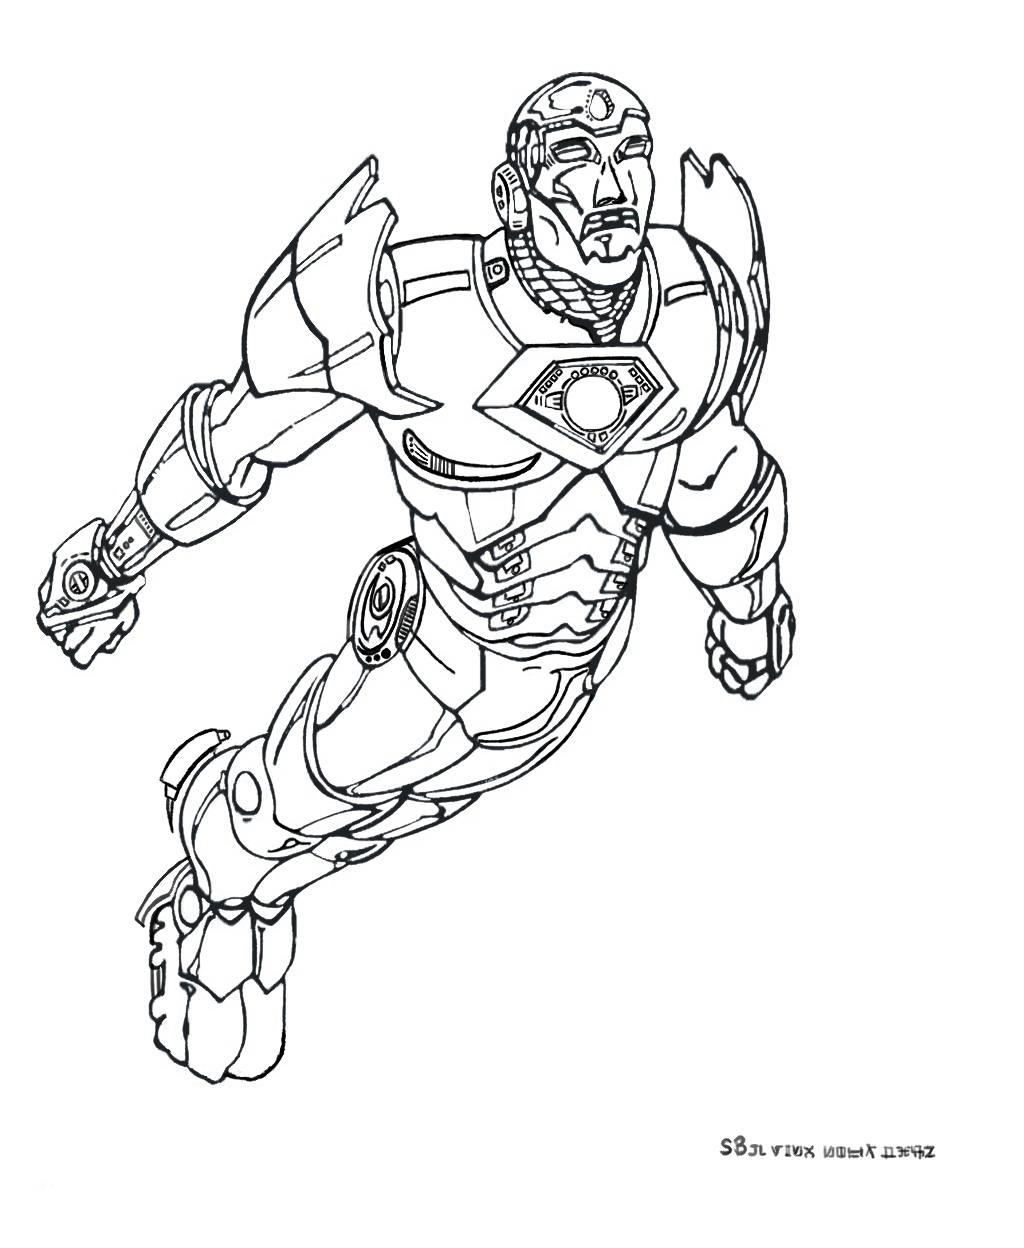 Iron man 4 coloriage iron man coloriages pour enfants - Coloriage ironman ...